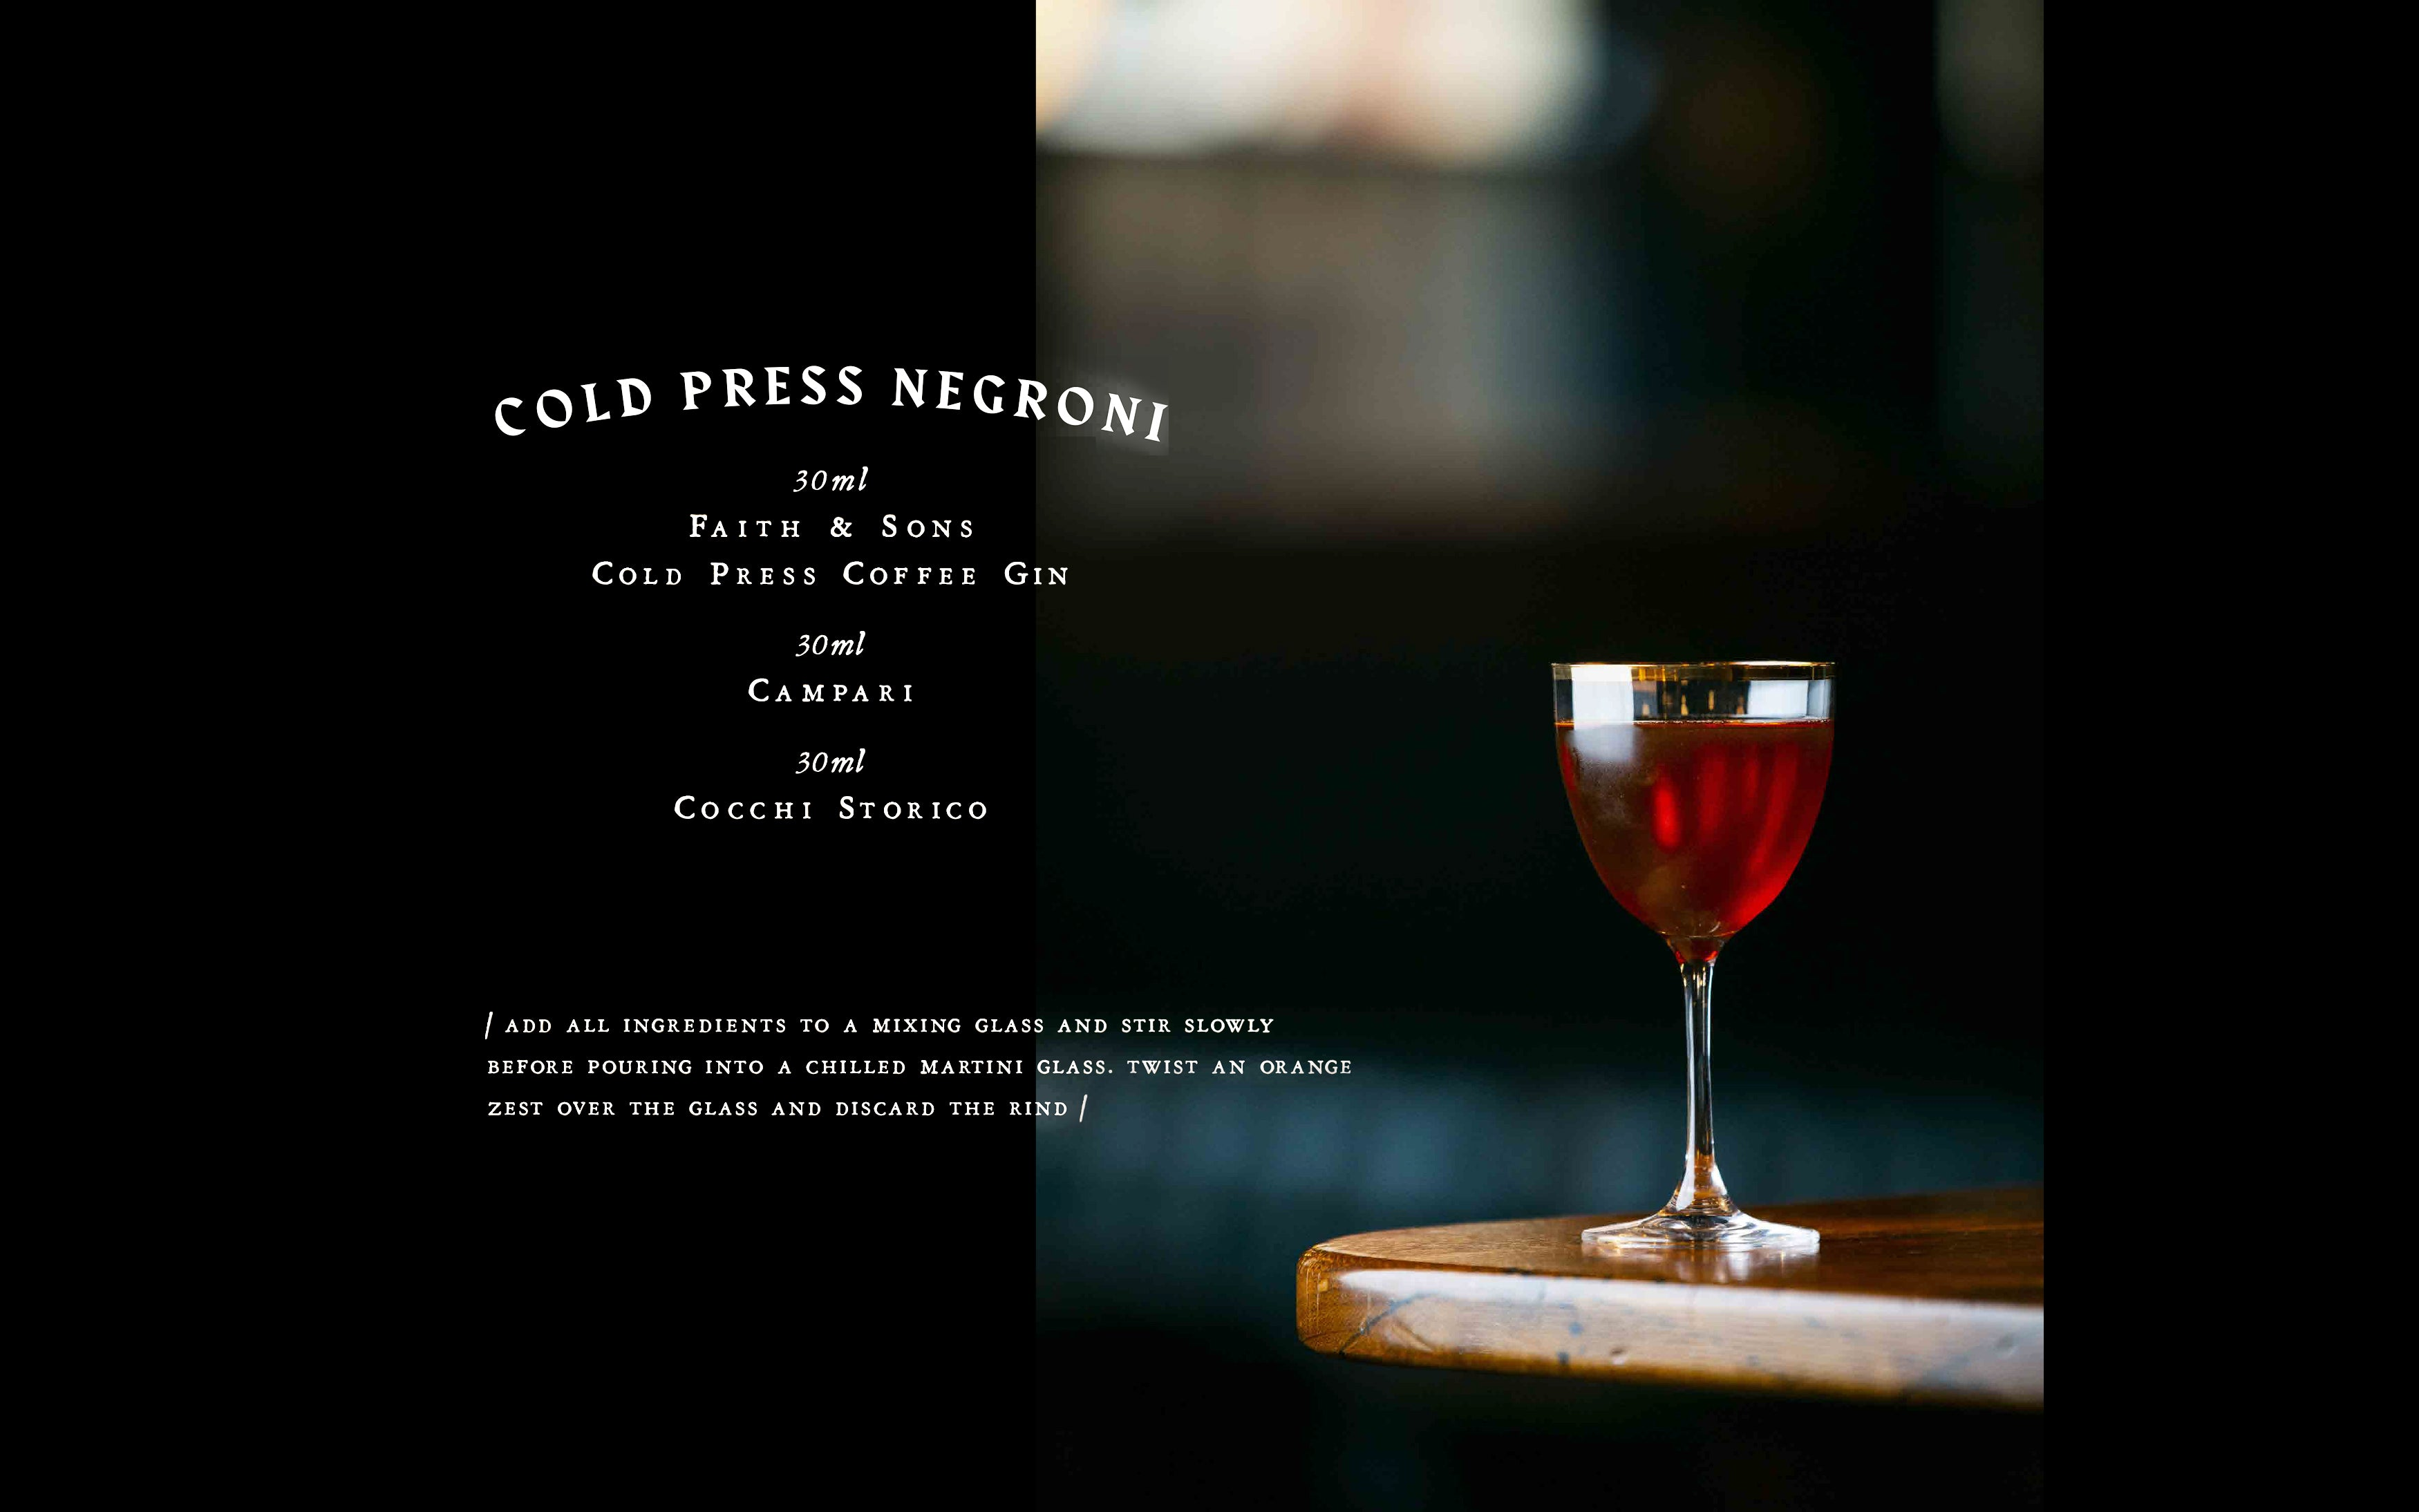 Cold Press Negroni